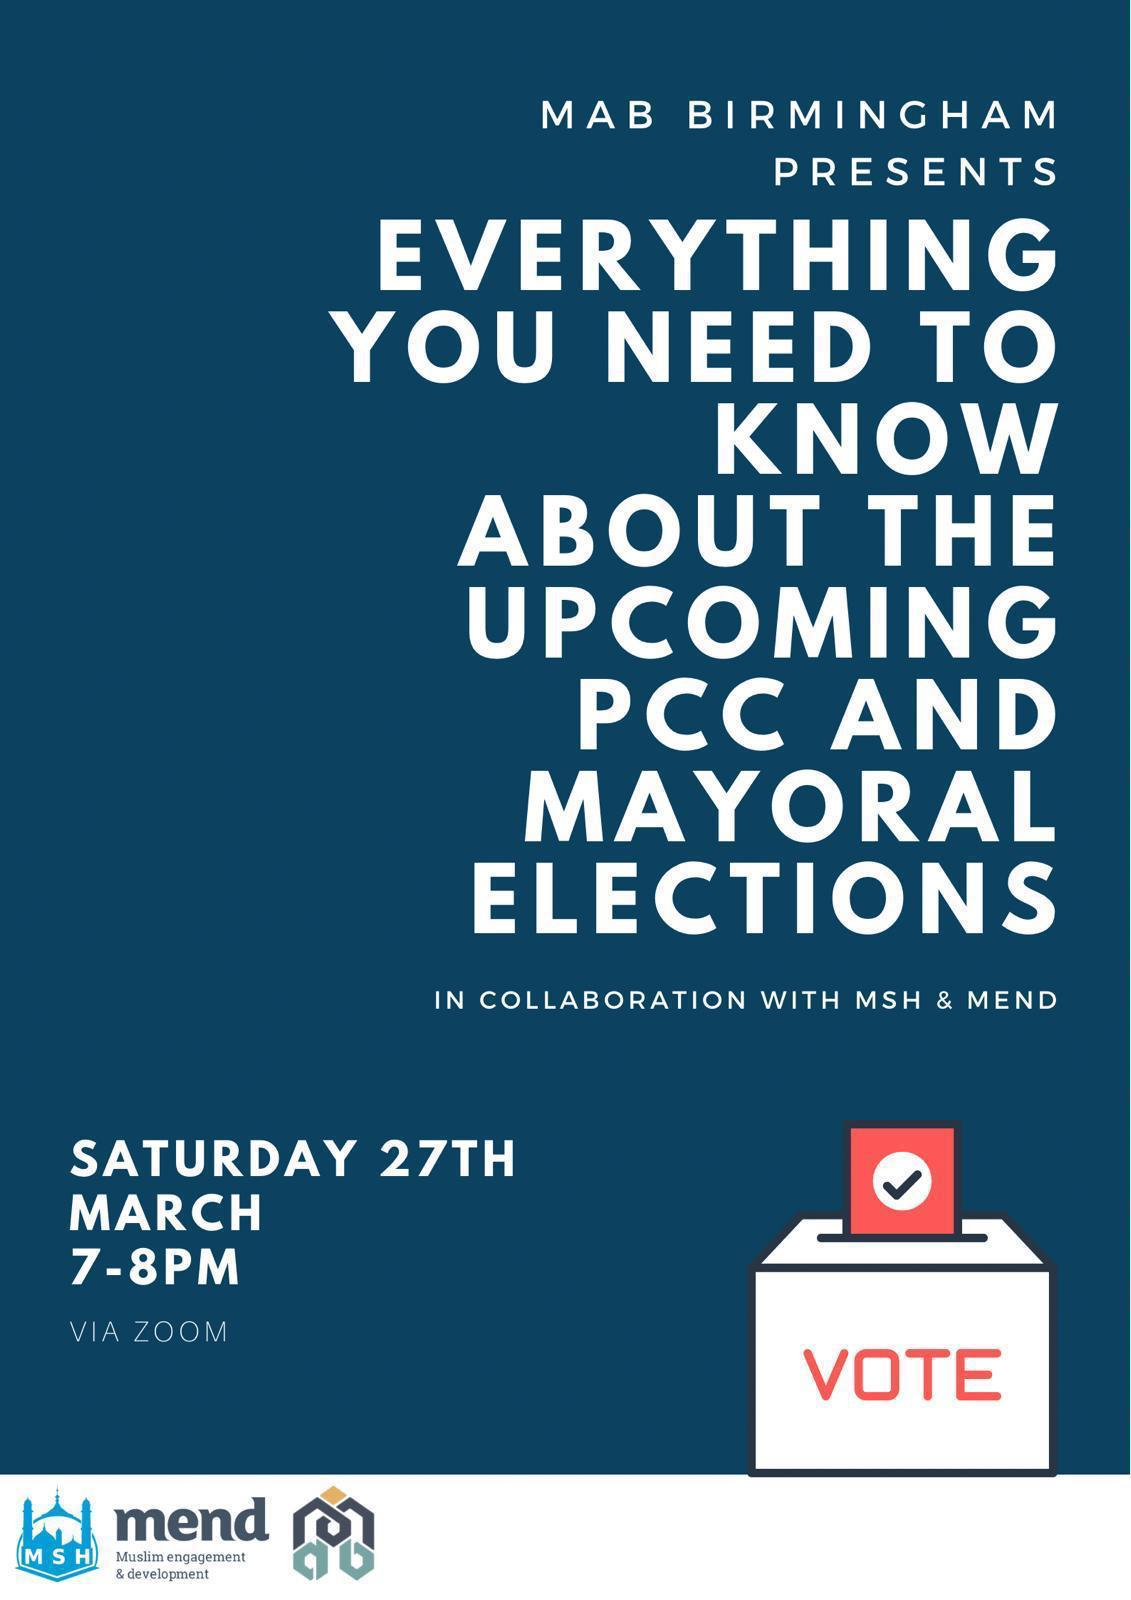 MEND Birmingham: Get Out and Vote (GOAV) 2021 awareness session with MAB and MSH